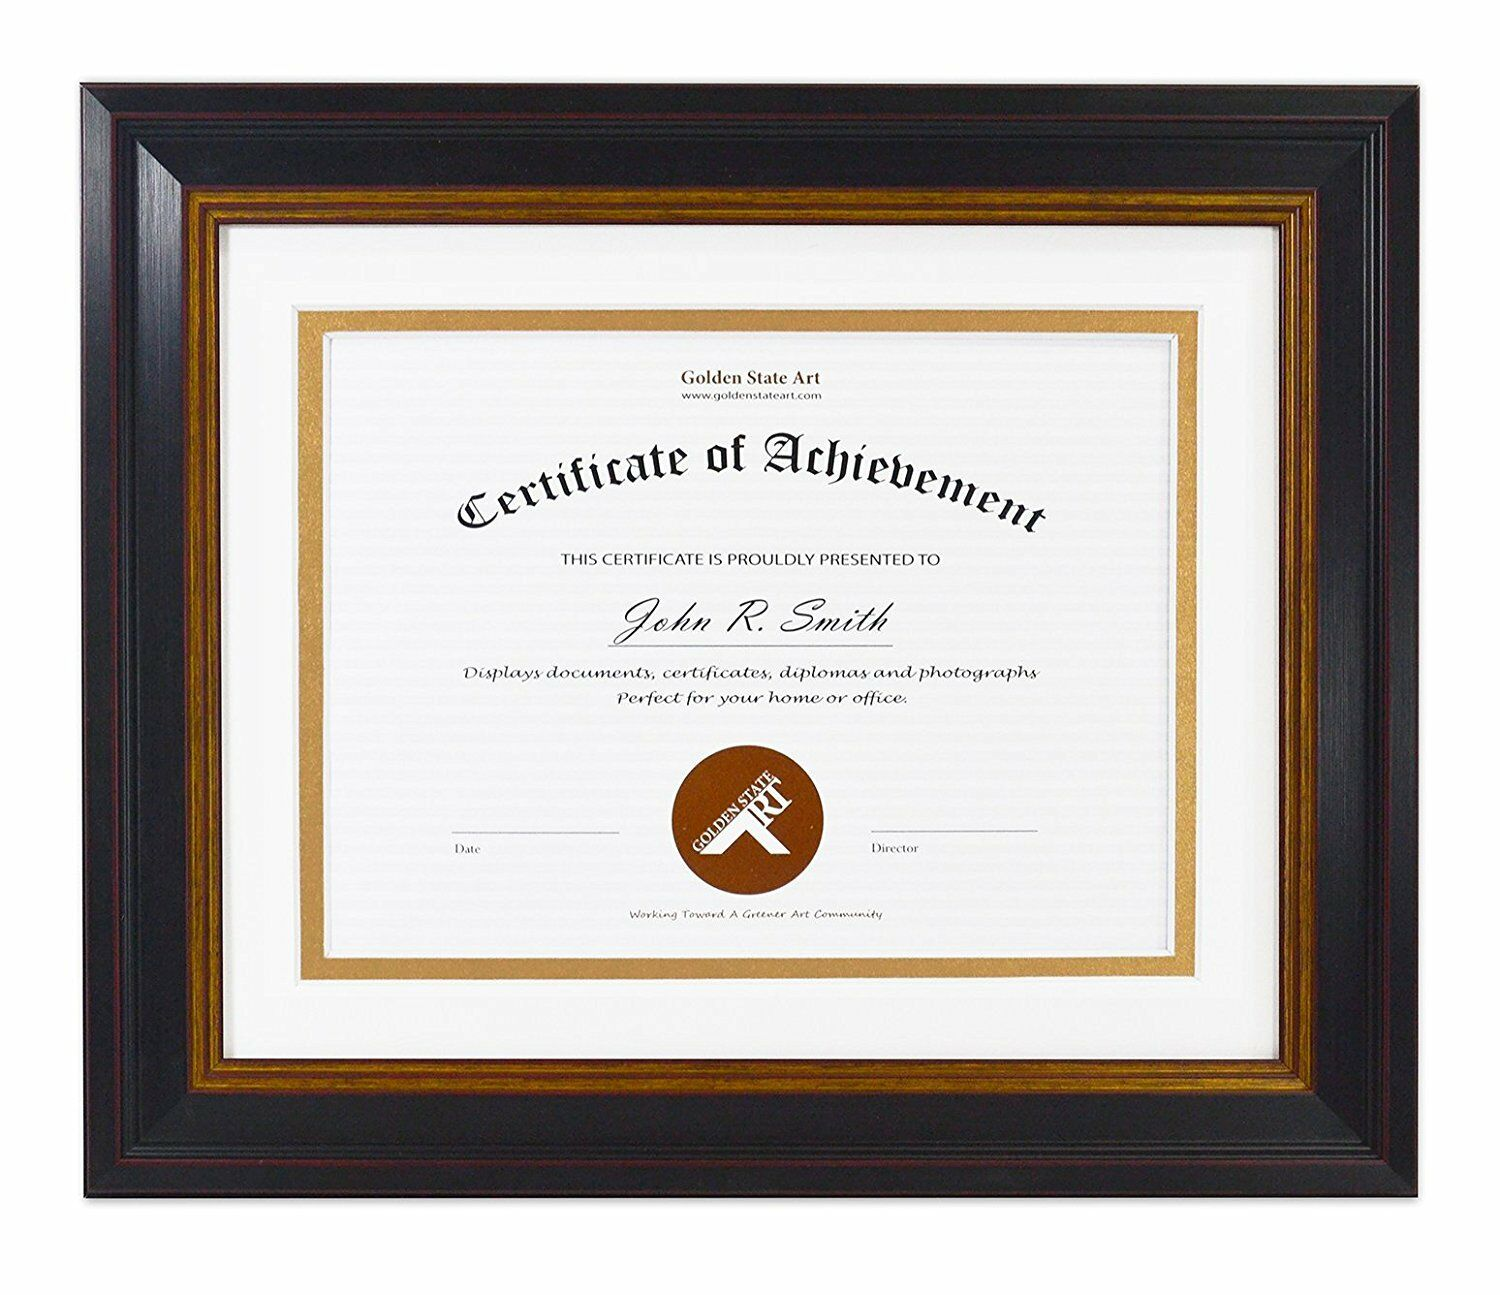 x frame for x diploma black gold burgundy color  picture 1 of 4